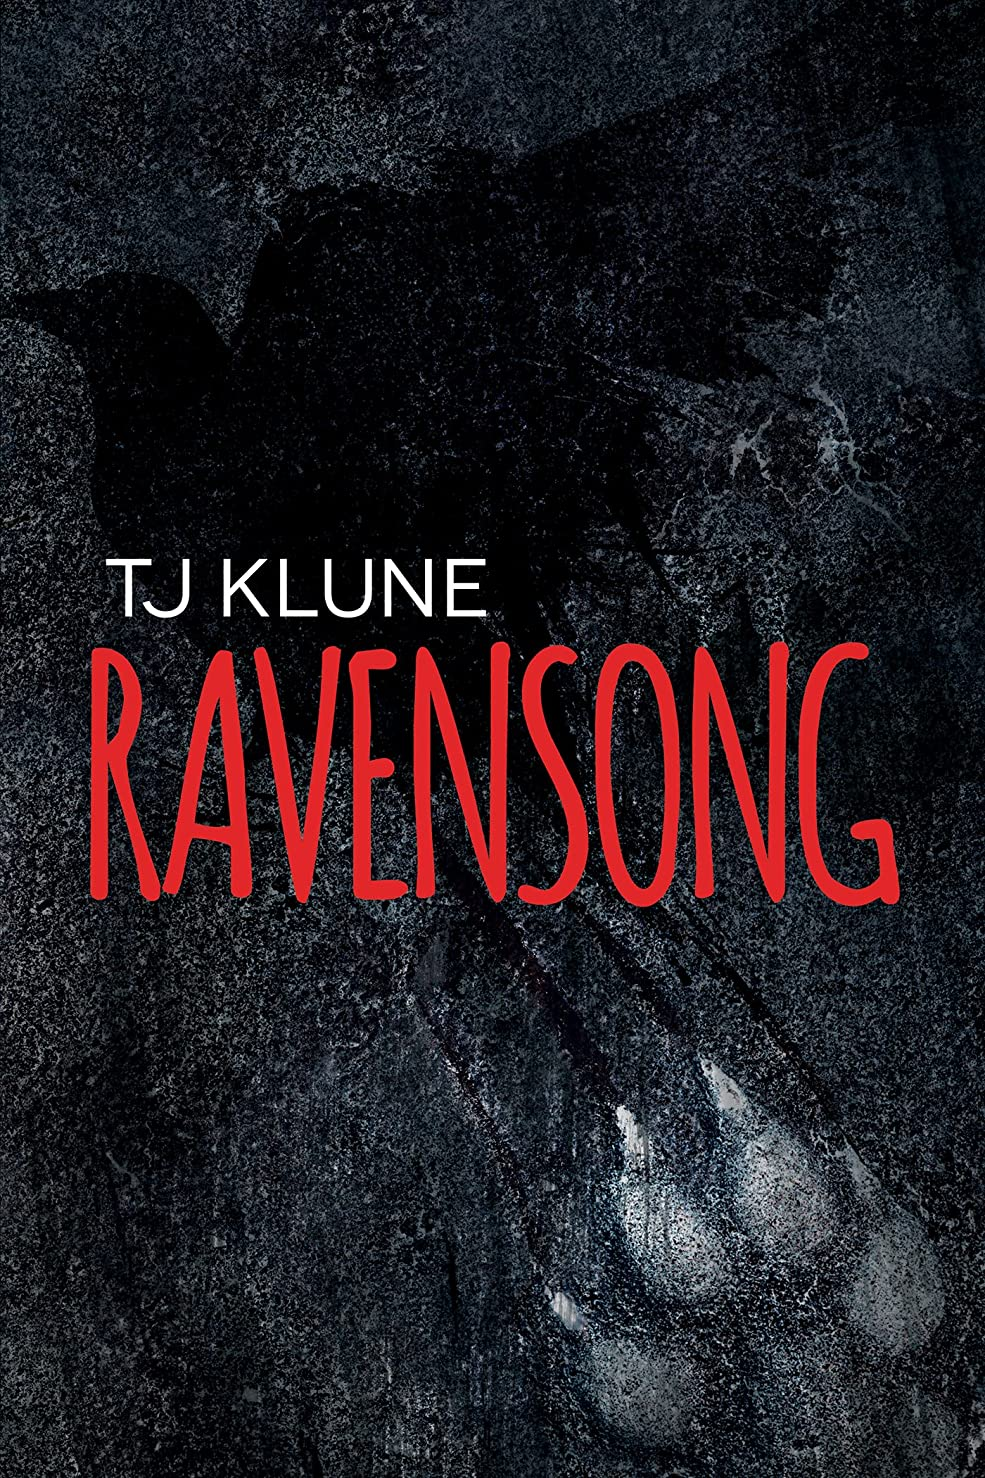 ピカソ優れました表示Ravensong (Green Creek Book 2) (English Edition)